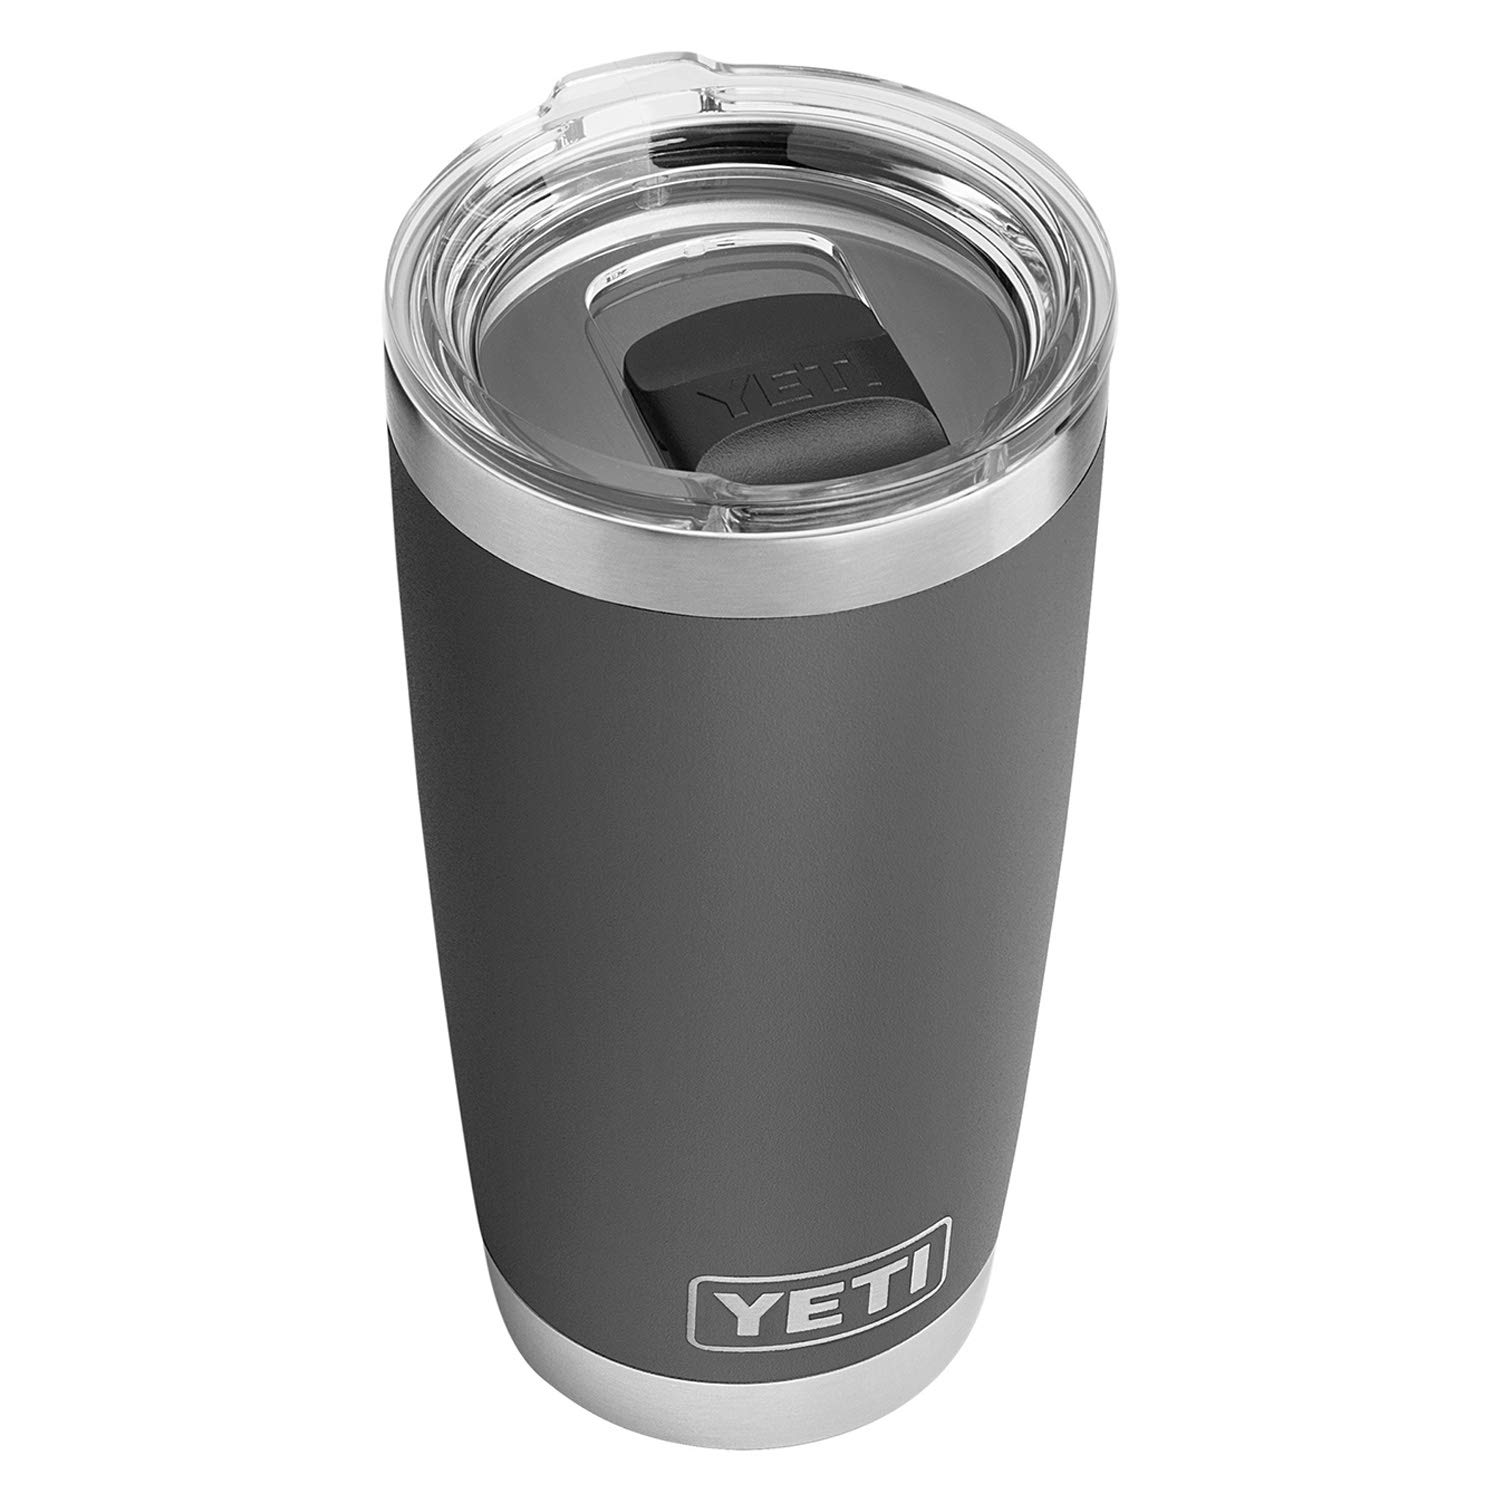 697ddae025 YETI Rambler 20 oz Stainless Steel Vacuum Insulated Tumbler w/MagSlider  Lid, Charcoal